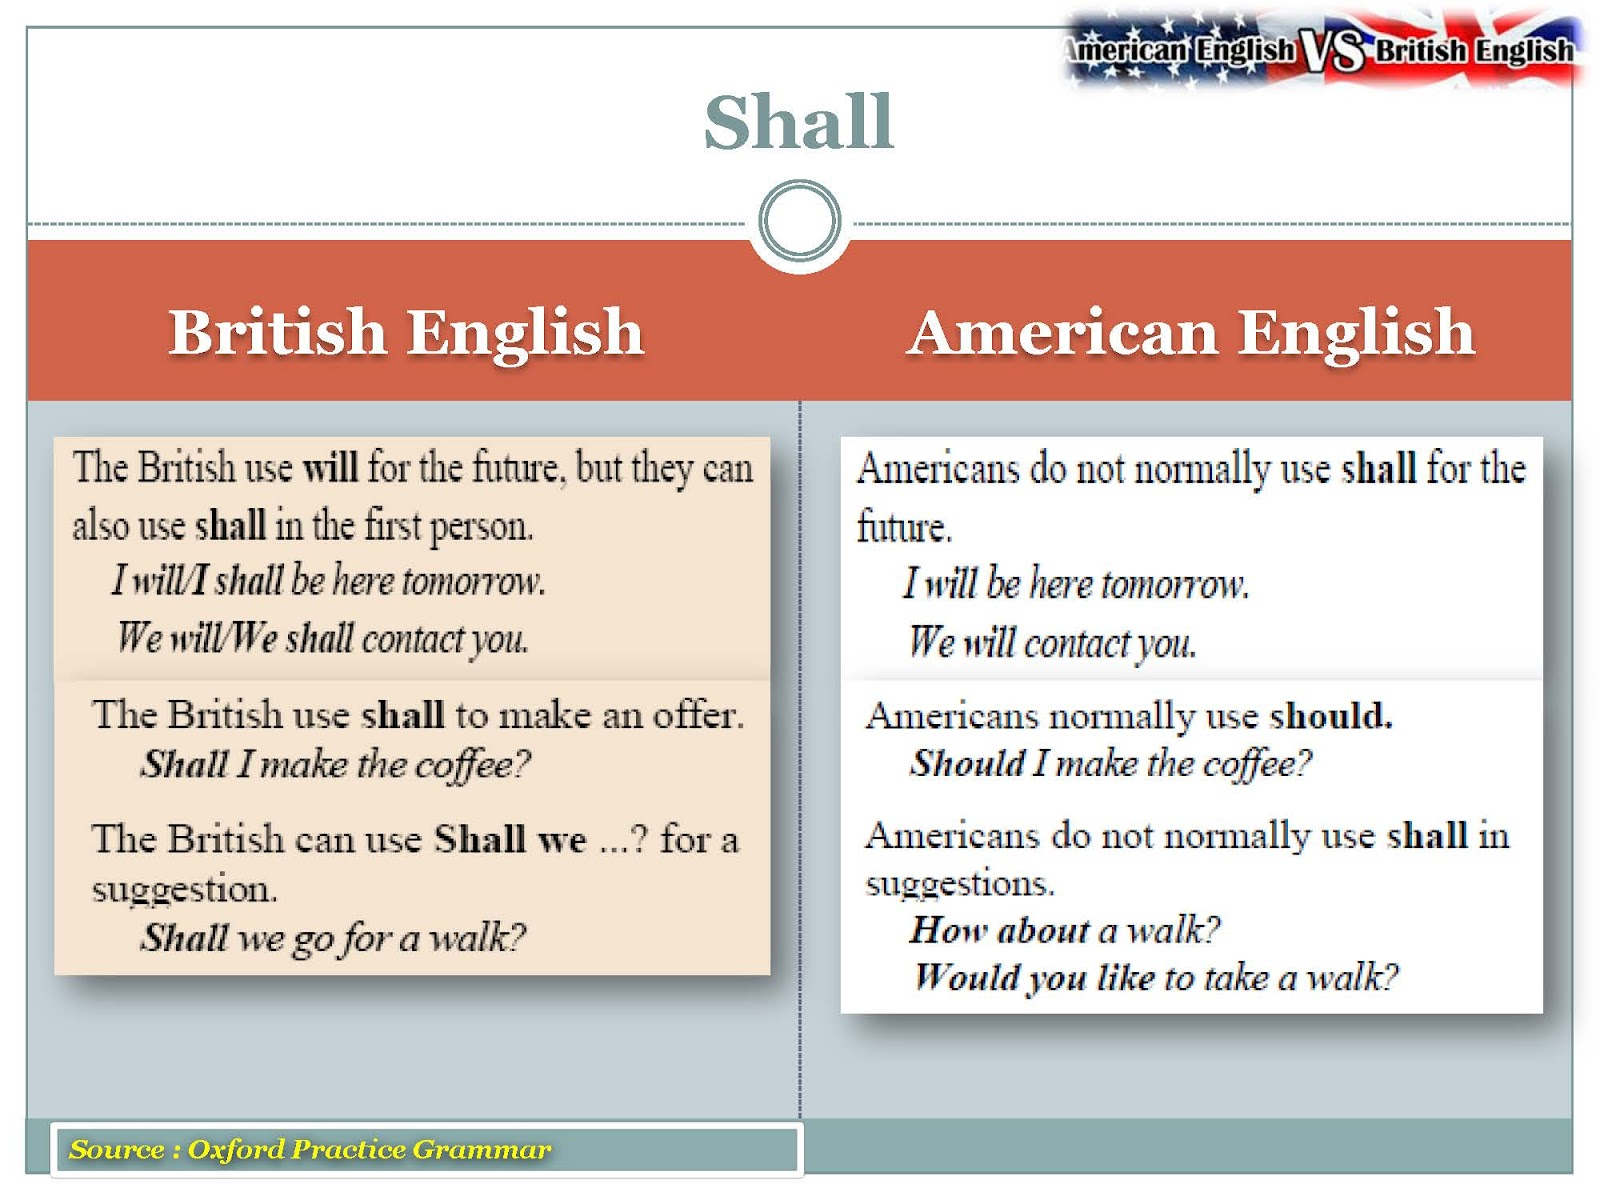 american vs english grammar An article by kerry maxwell and lindsay clandfield on recognizing grammatical differences between american and british english.